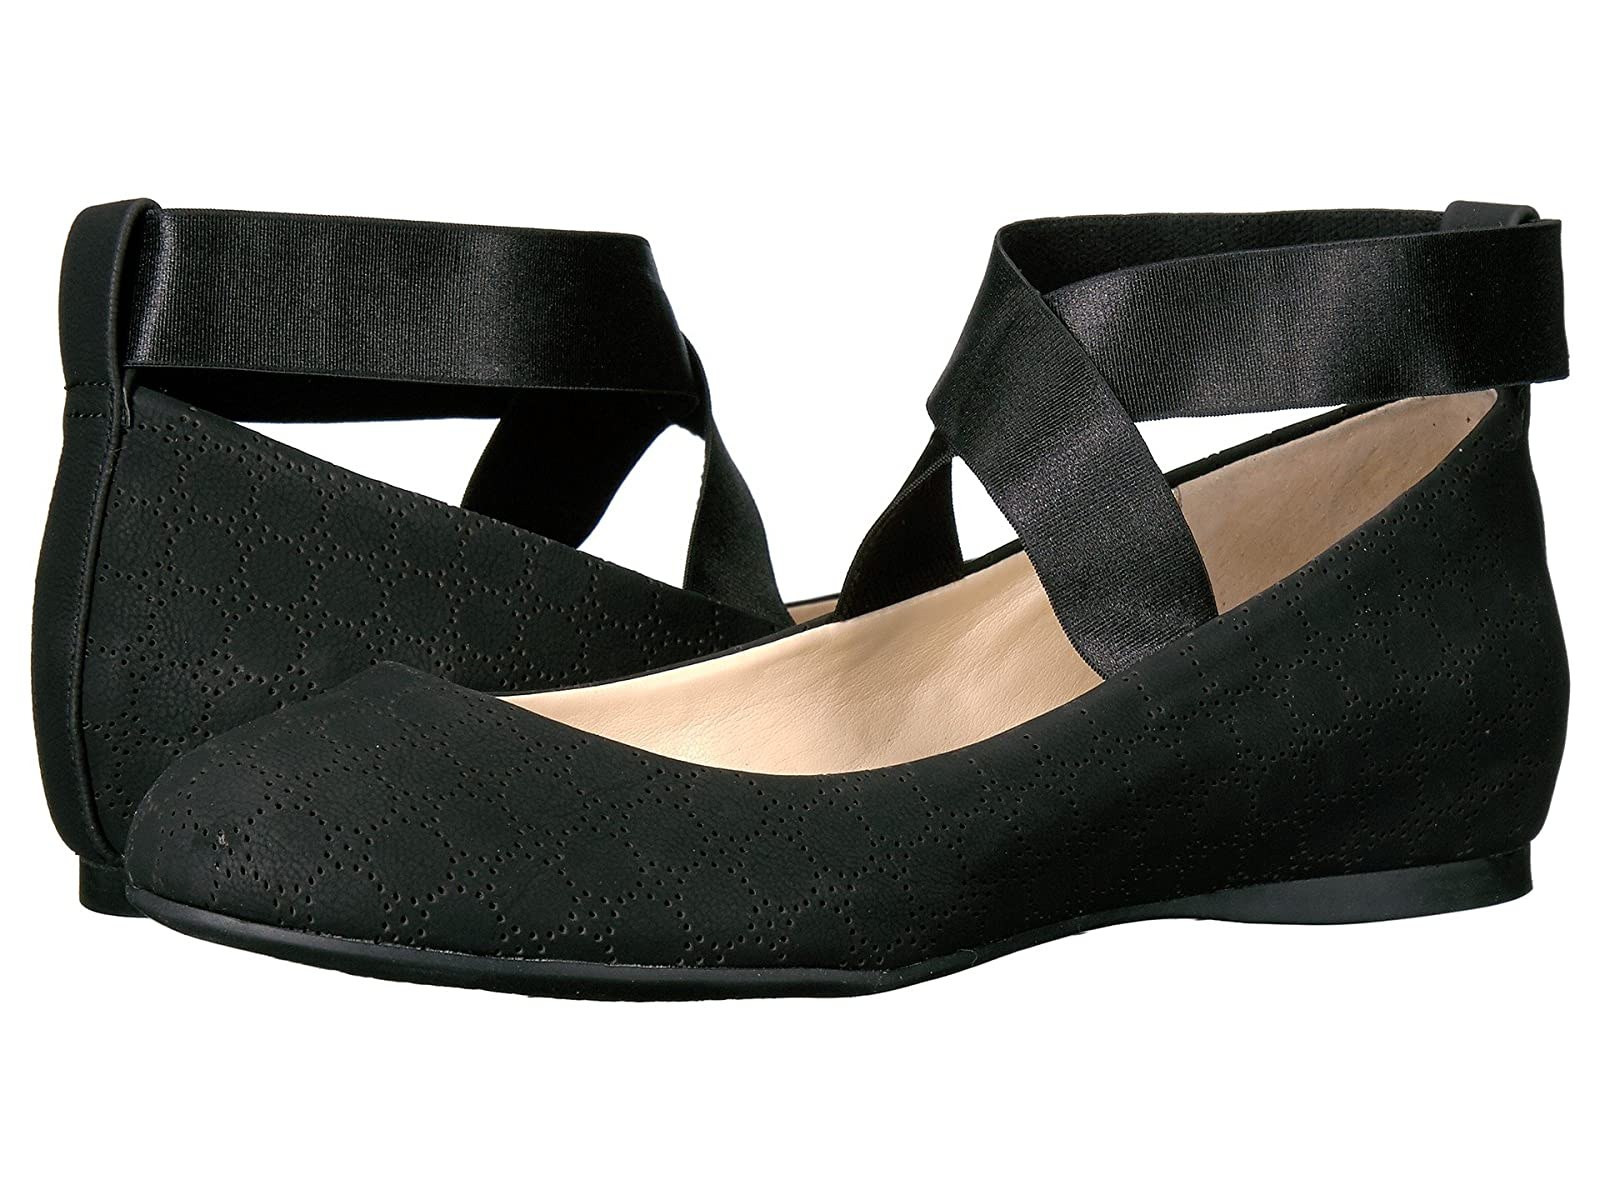 Jessica Simpson MandayssCheap and distinctive eye-catching shoes